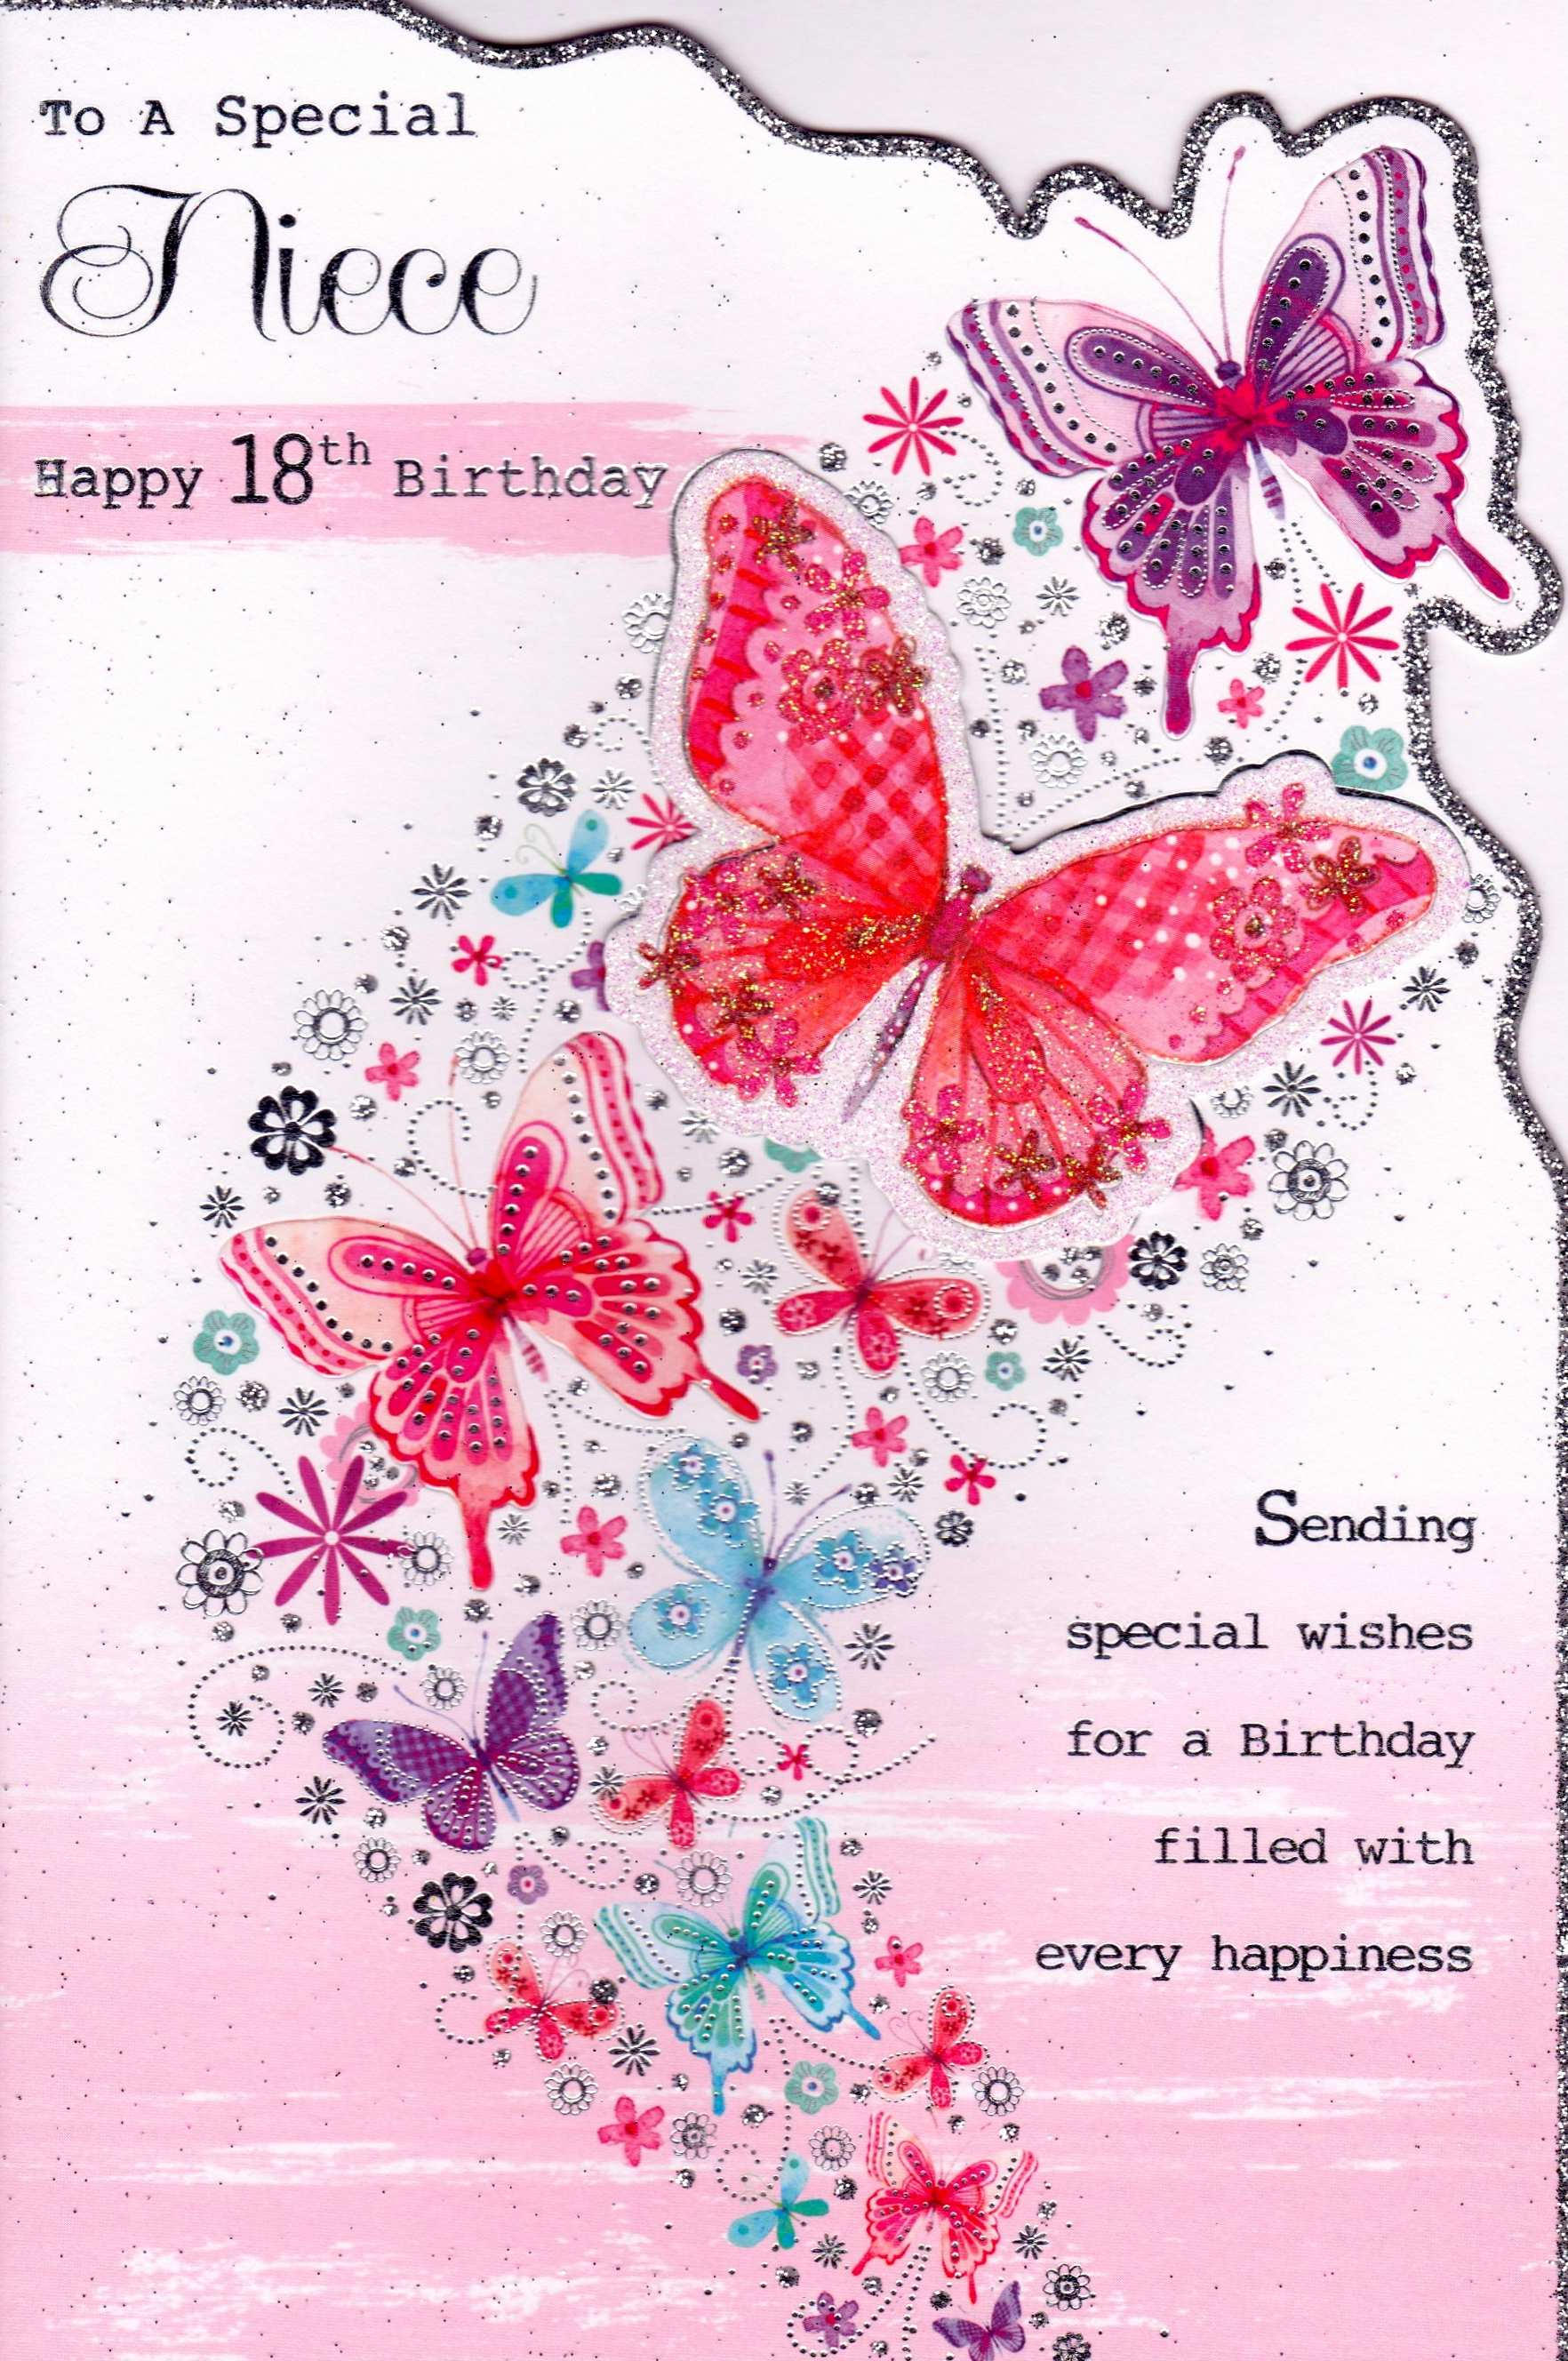 18th birthday card messages niece ; happy-18th-birthday-wishes-inspirational-outstanding-message-for-50th-birthday-card-nypeacewalk-of-happy-18th-birthday-wishes